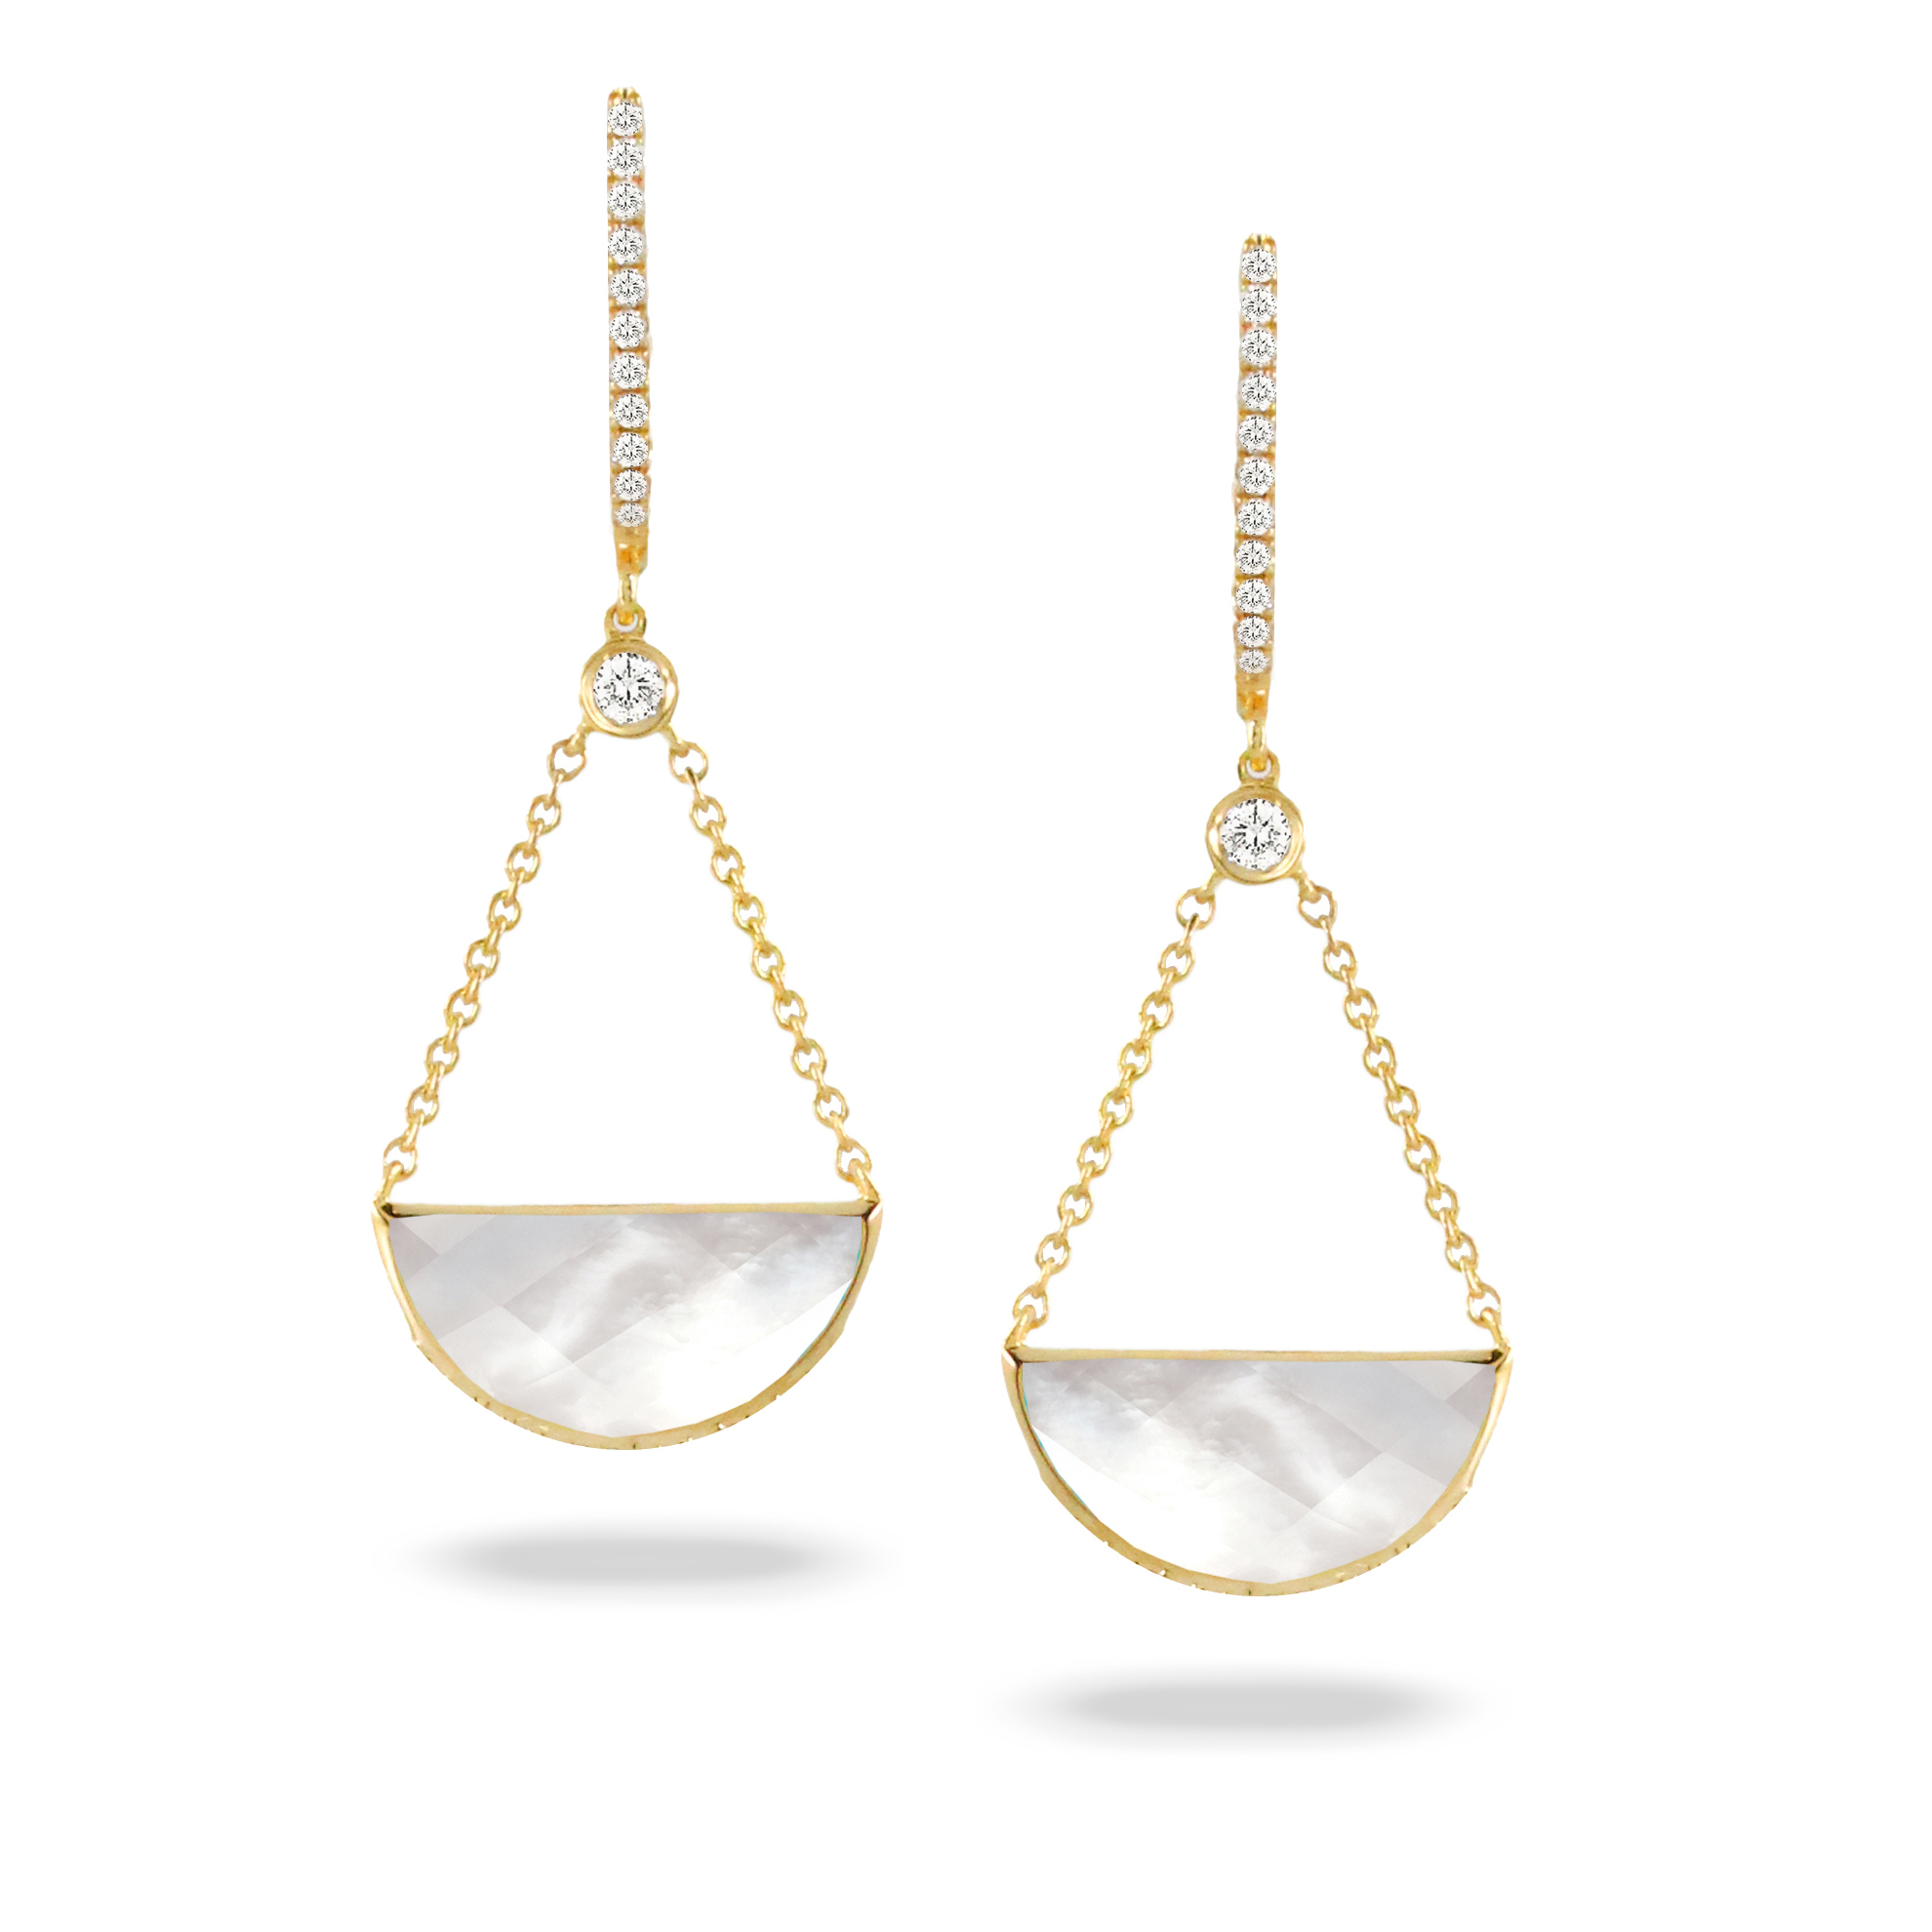 18K YELLOW GOLD EARRING by Dove